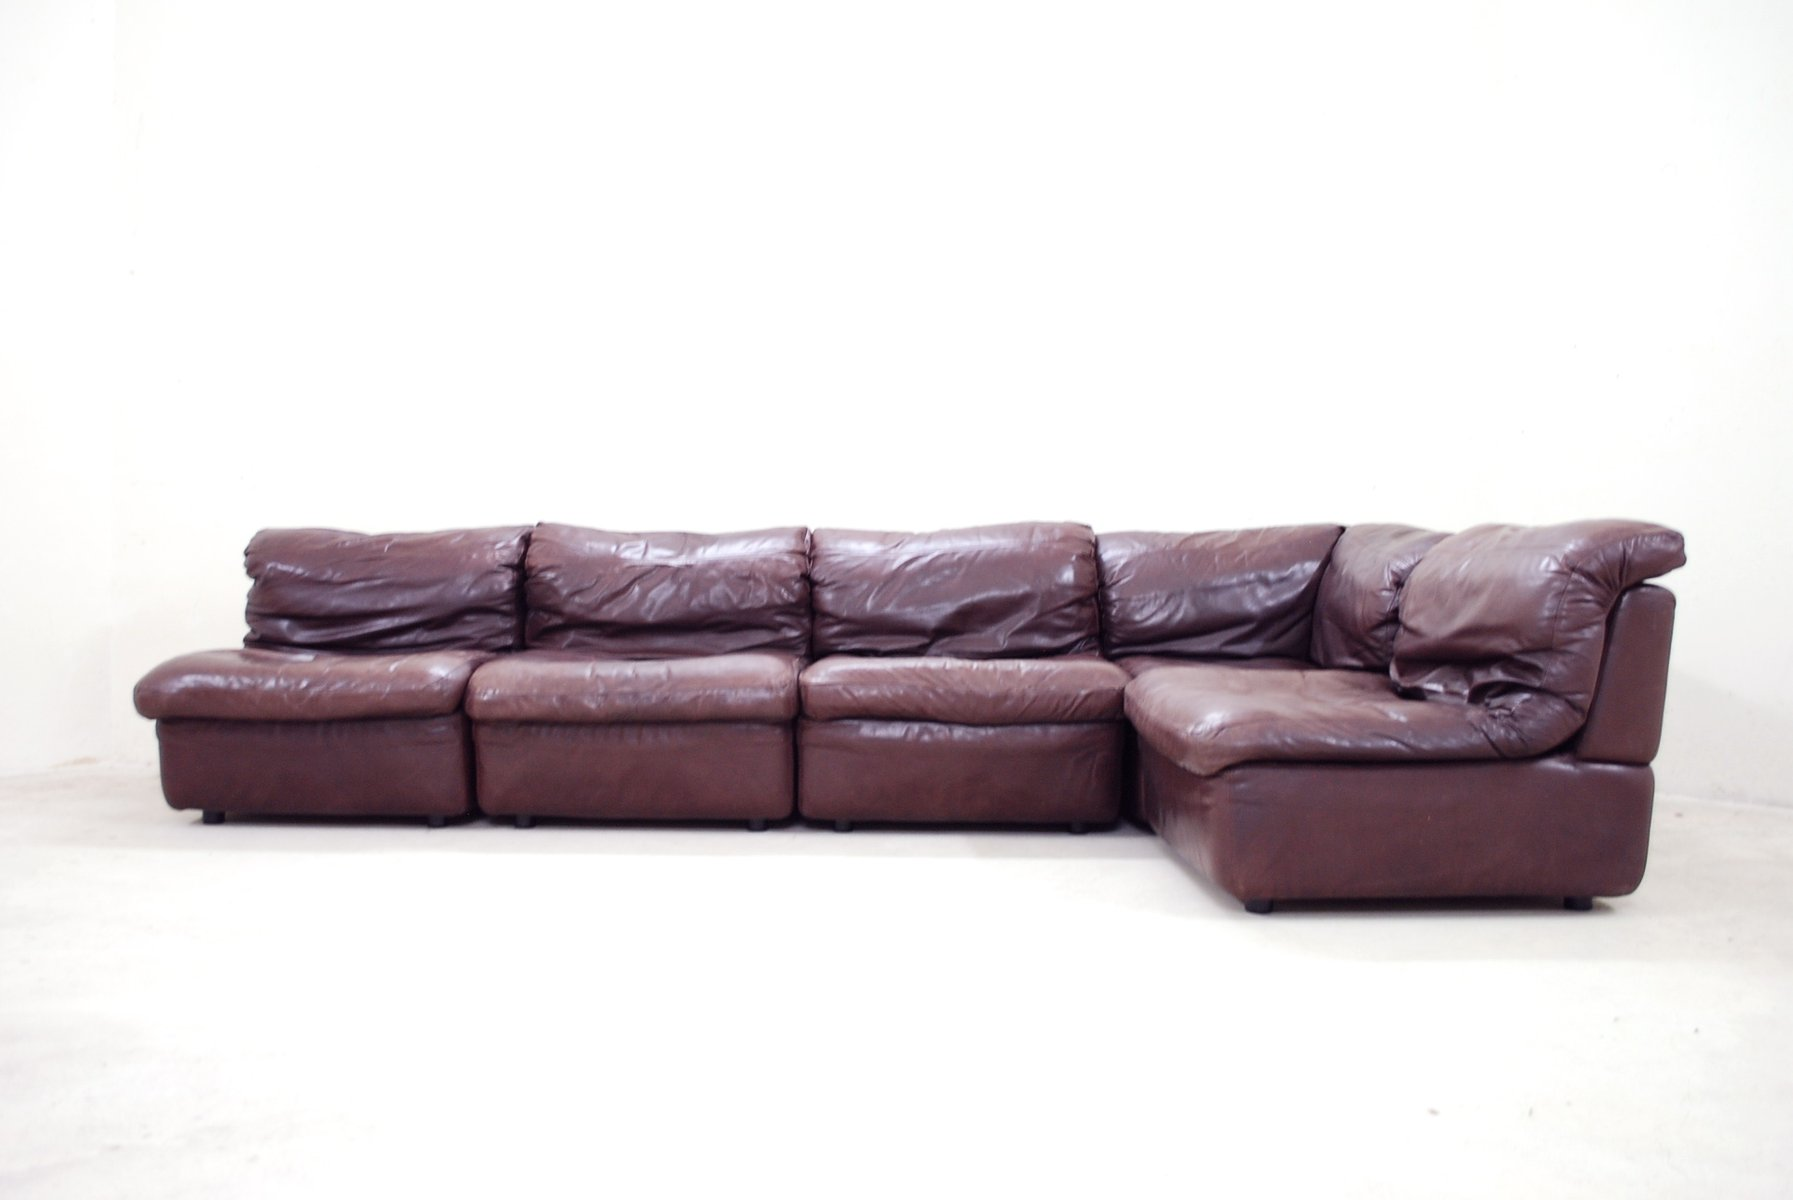 Modular Bordeaux Leather Sofa From Rolf Benz 1985 For Sale At Pamono